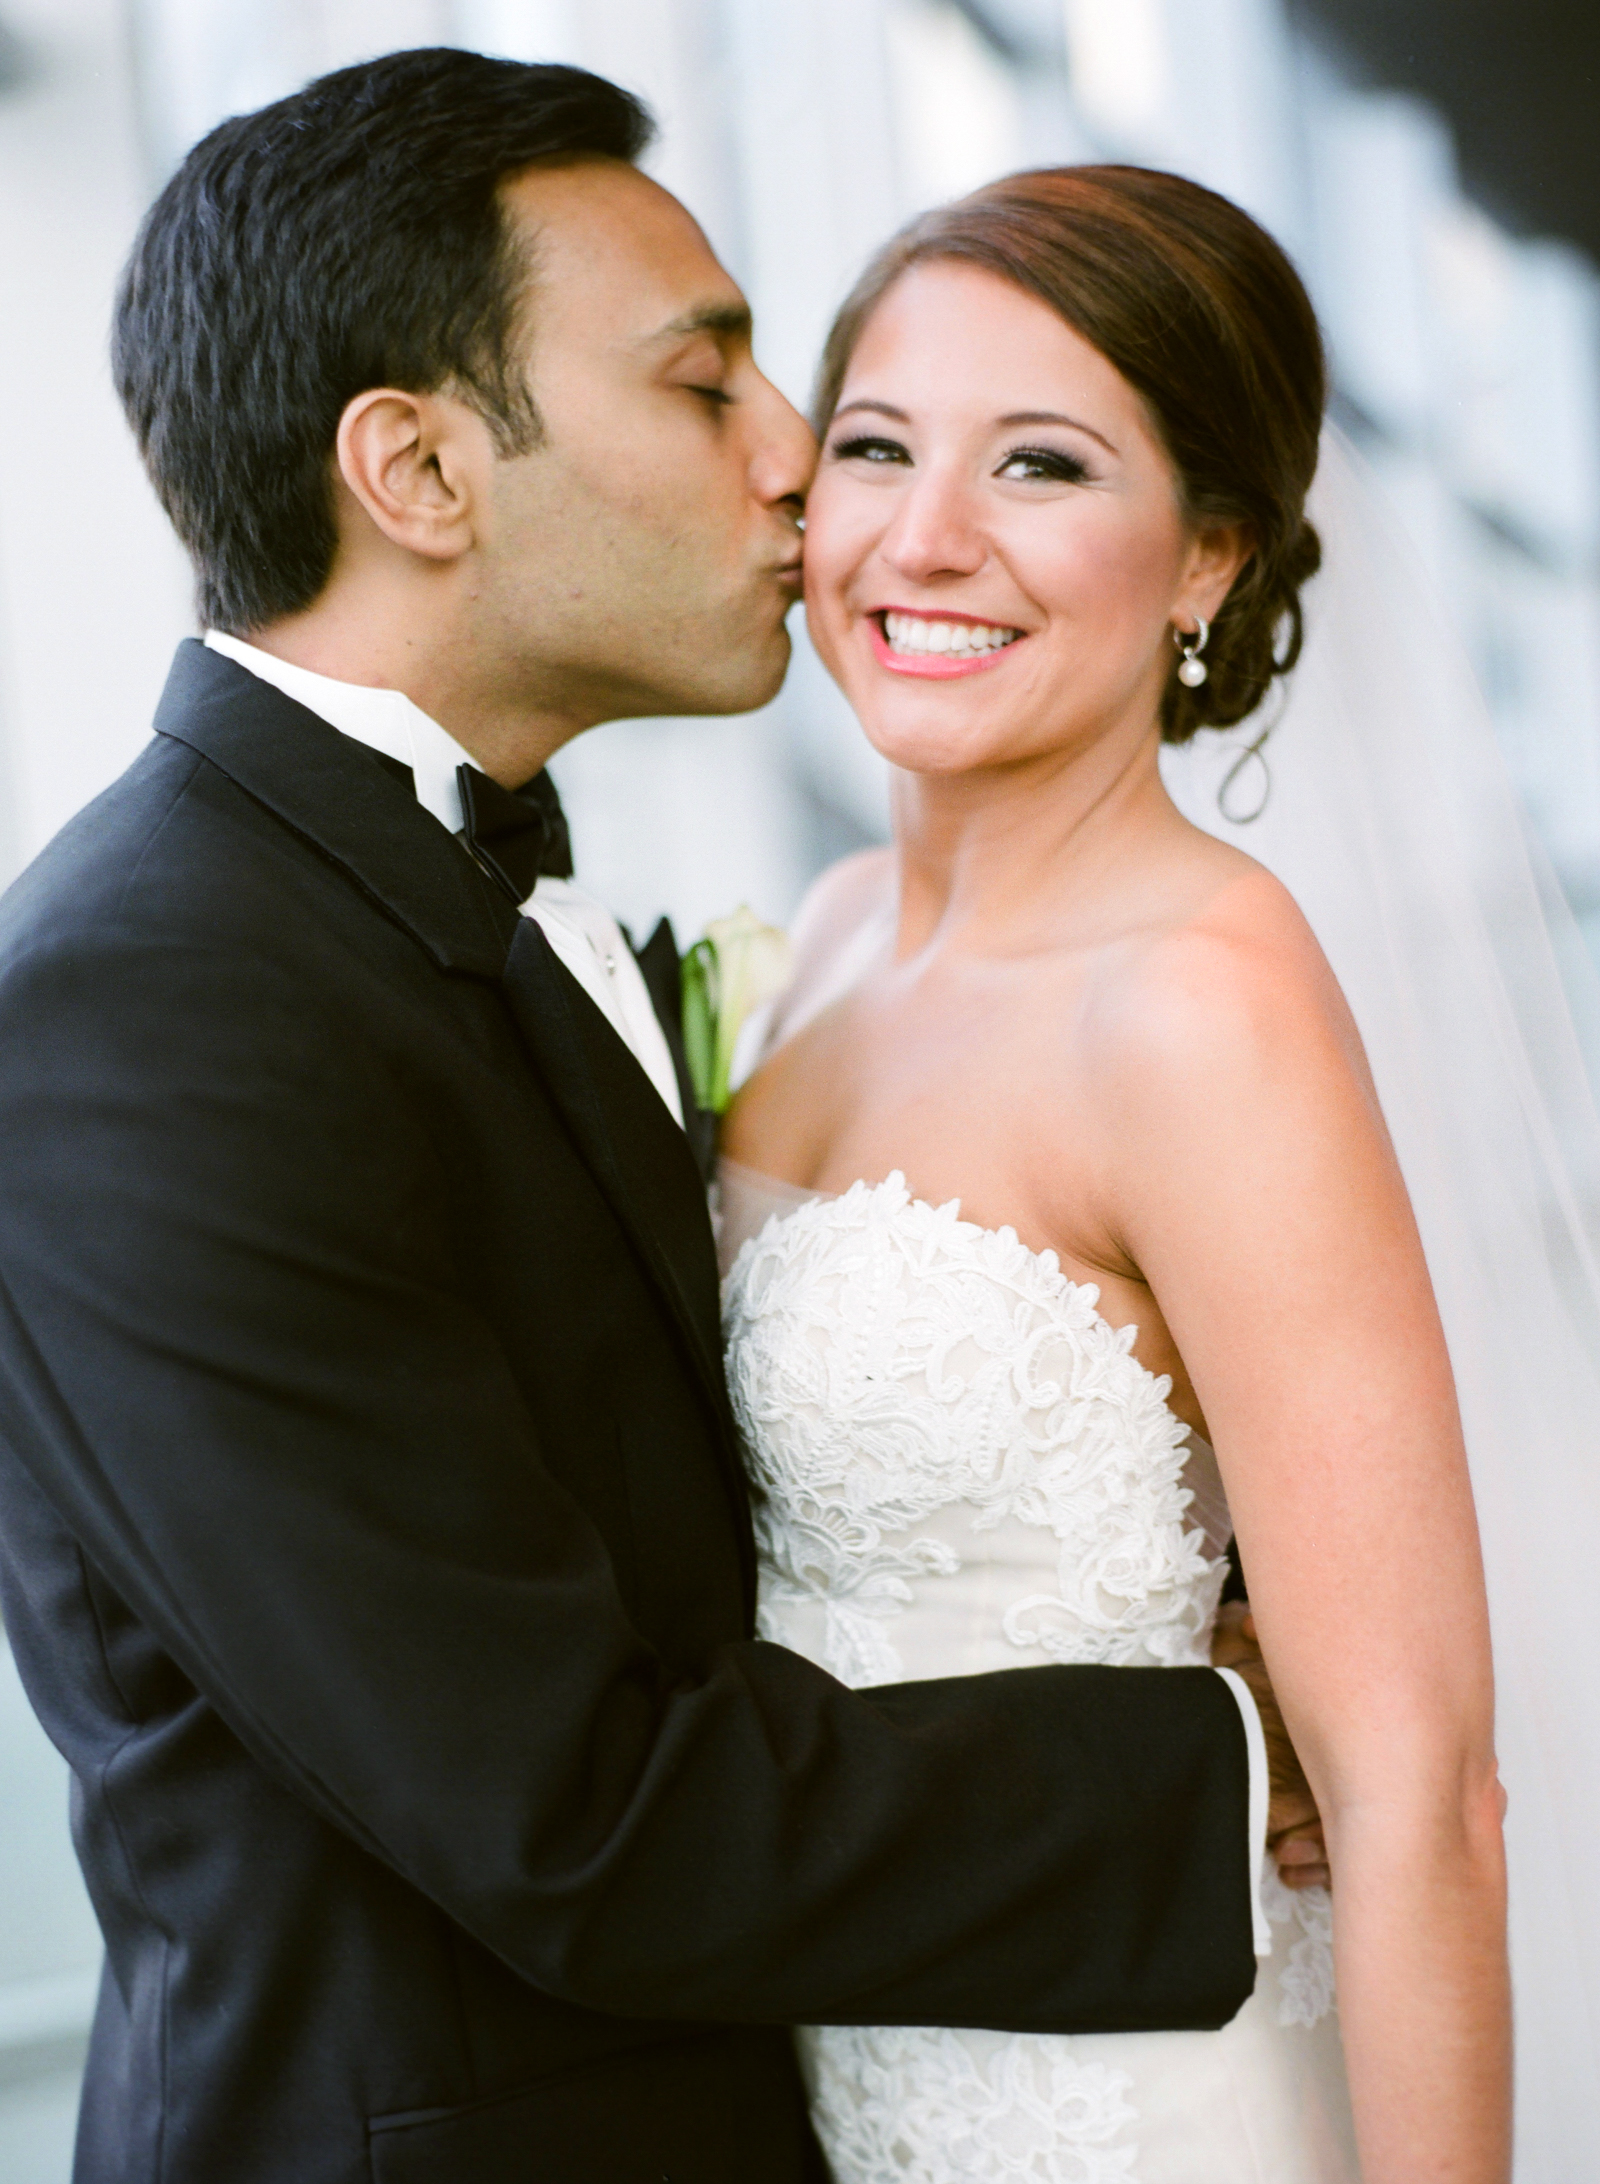 0044_Indian_Houston_Wedding_Hilton_Kochar.jpg